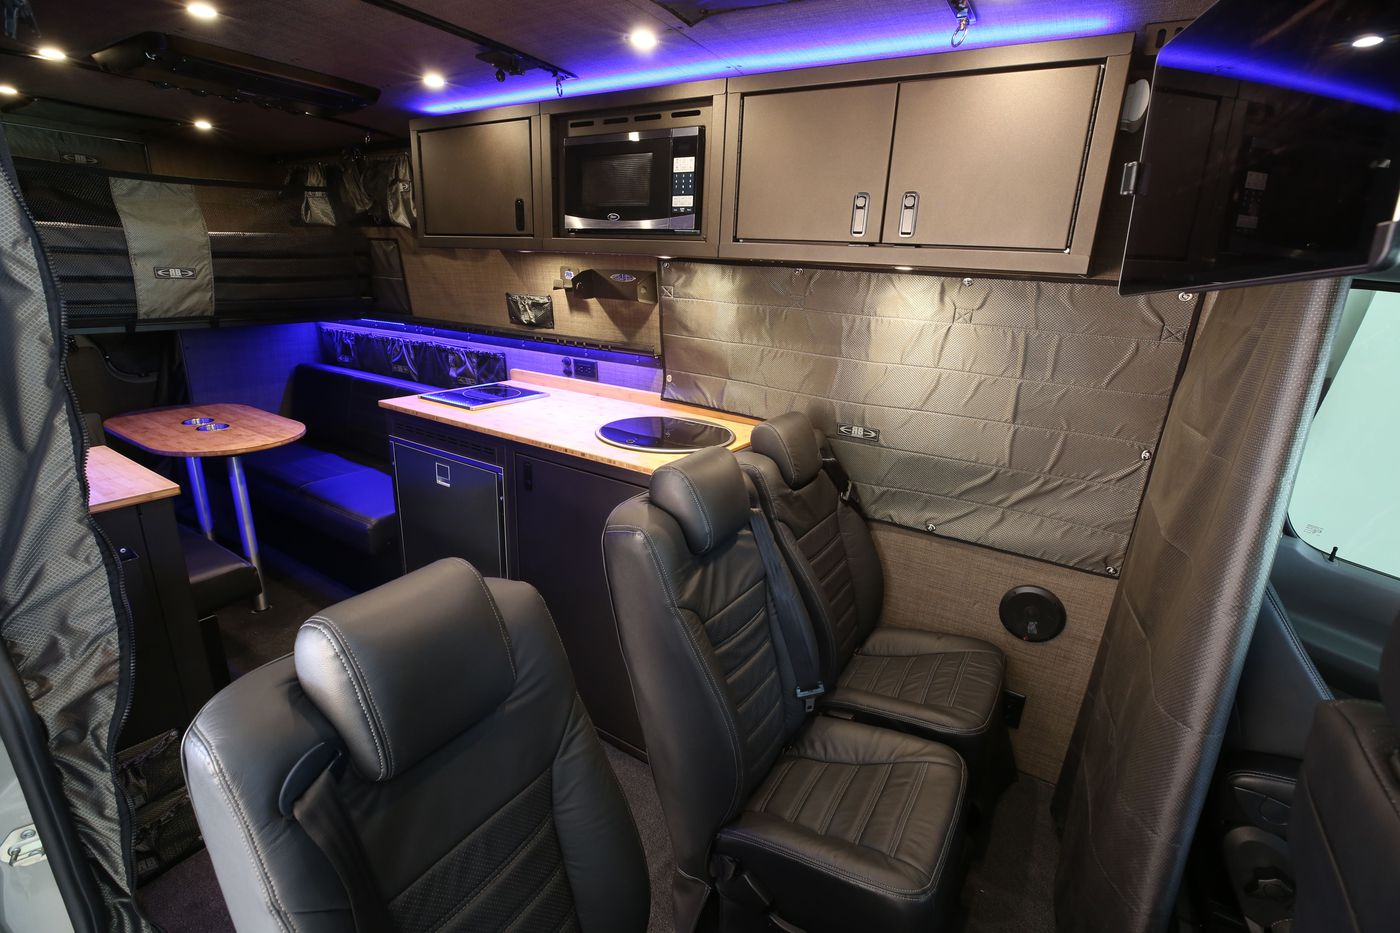 Camper van sleeps four and hides a clever bathroom - Curbed